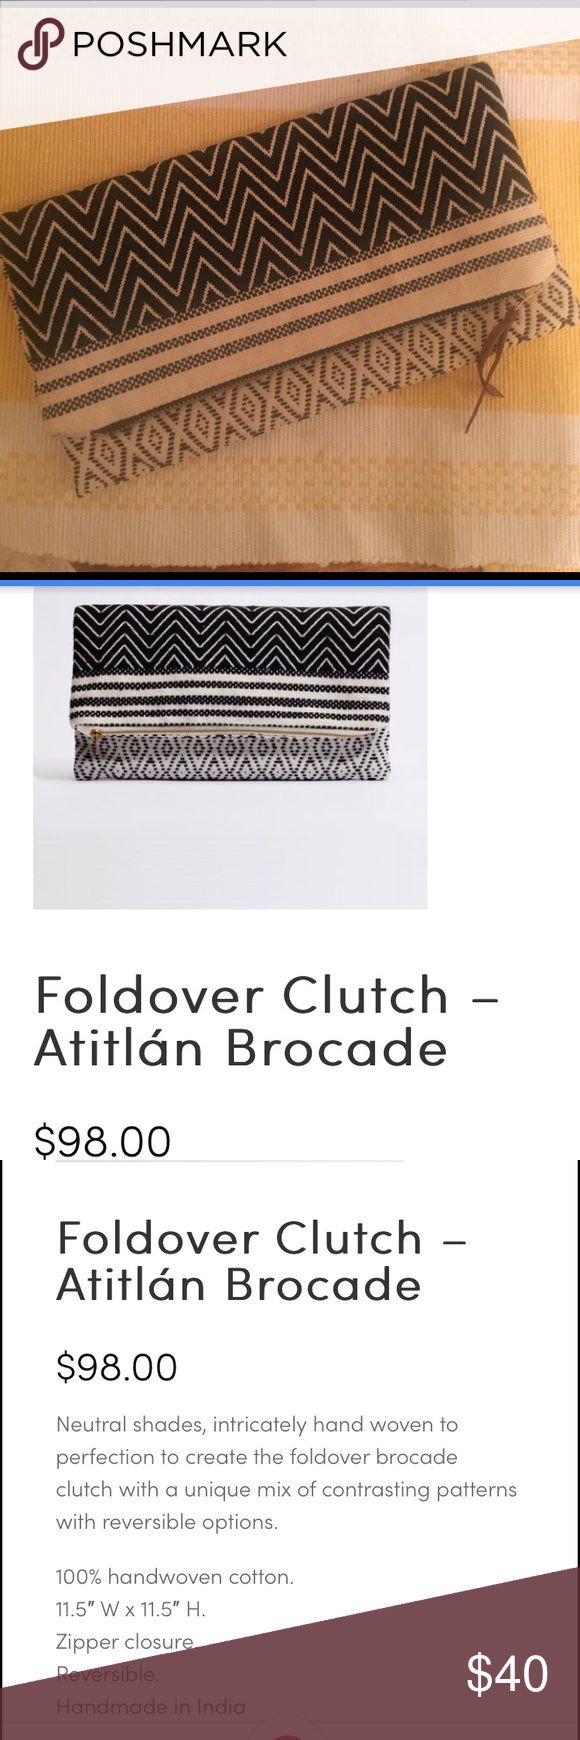 NEW!!! TRIBE ALIVE: Fold over Clutch! Reversible! Brand new- never been used! This clutch is Atitlán Brocade. It can be reversible. Summer must have! Check out the pictures for more specific details from the Alive Tribe website! Alive Tribe Bags Clutches & Wristlets